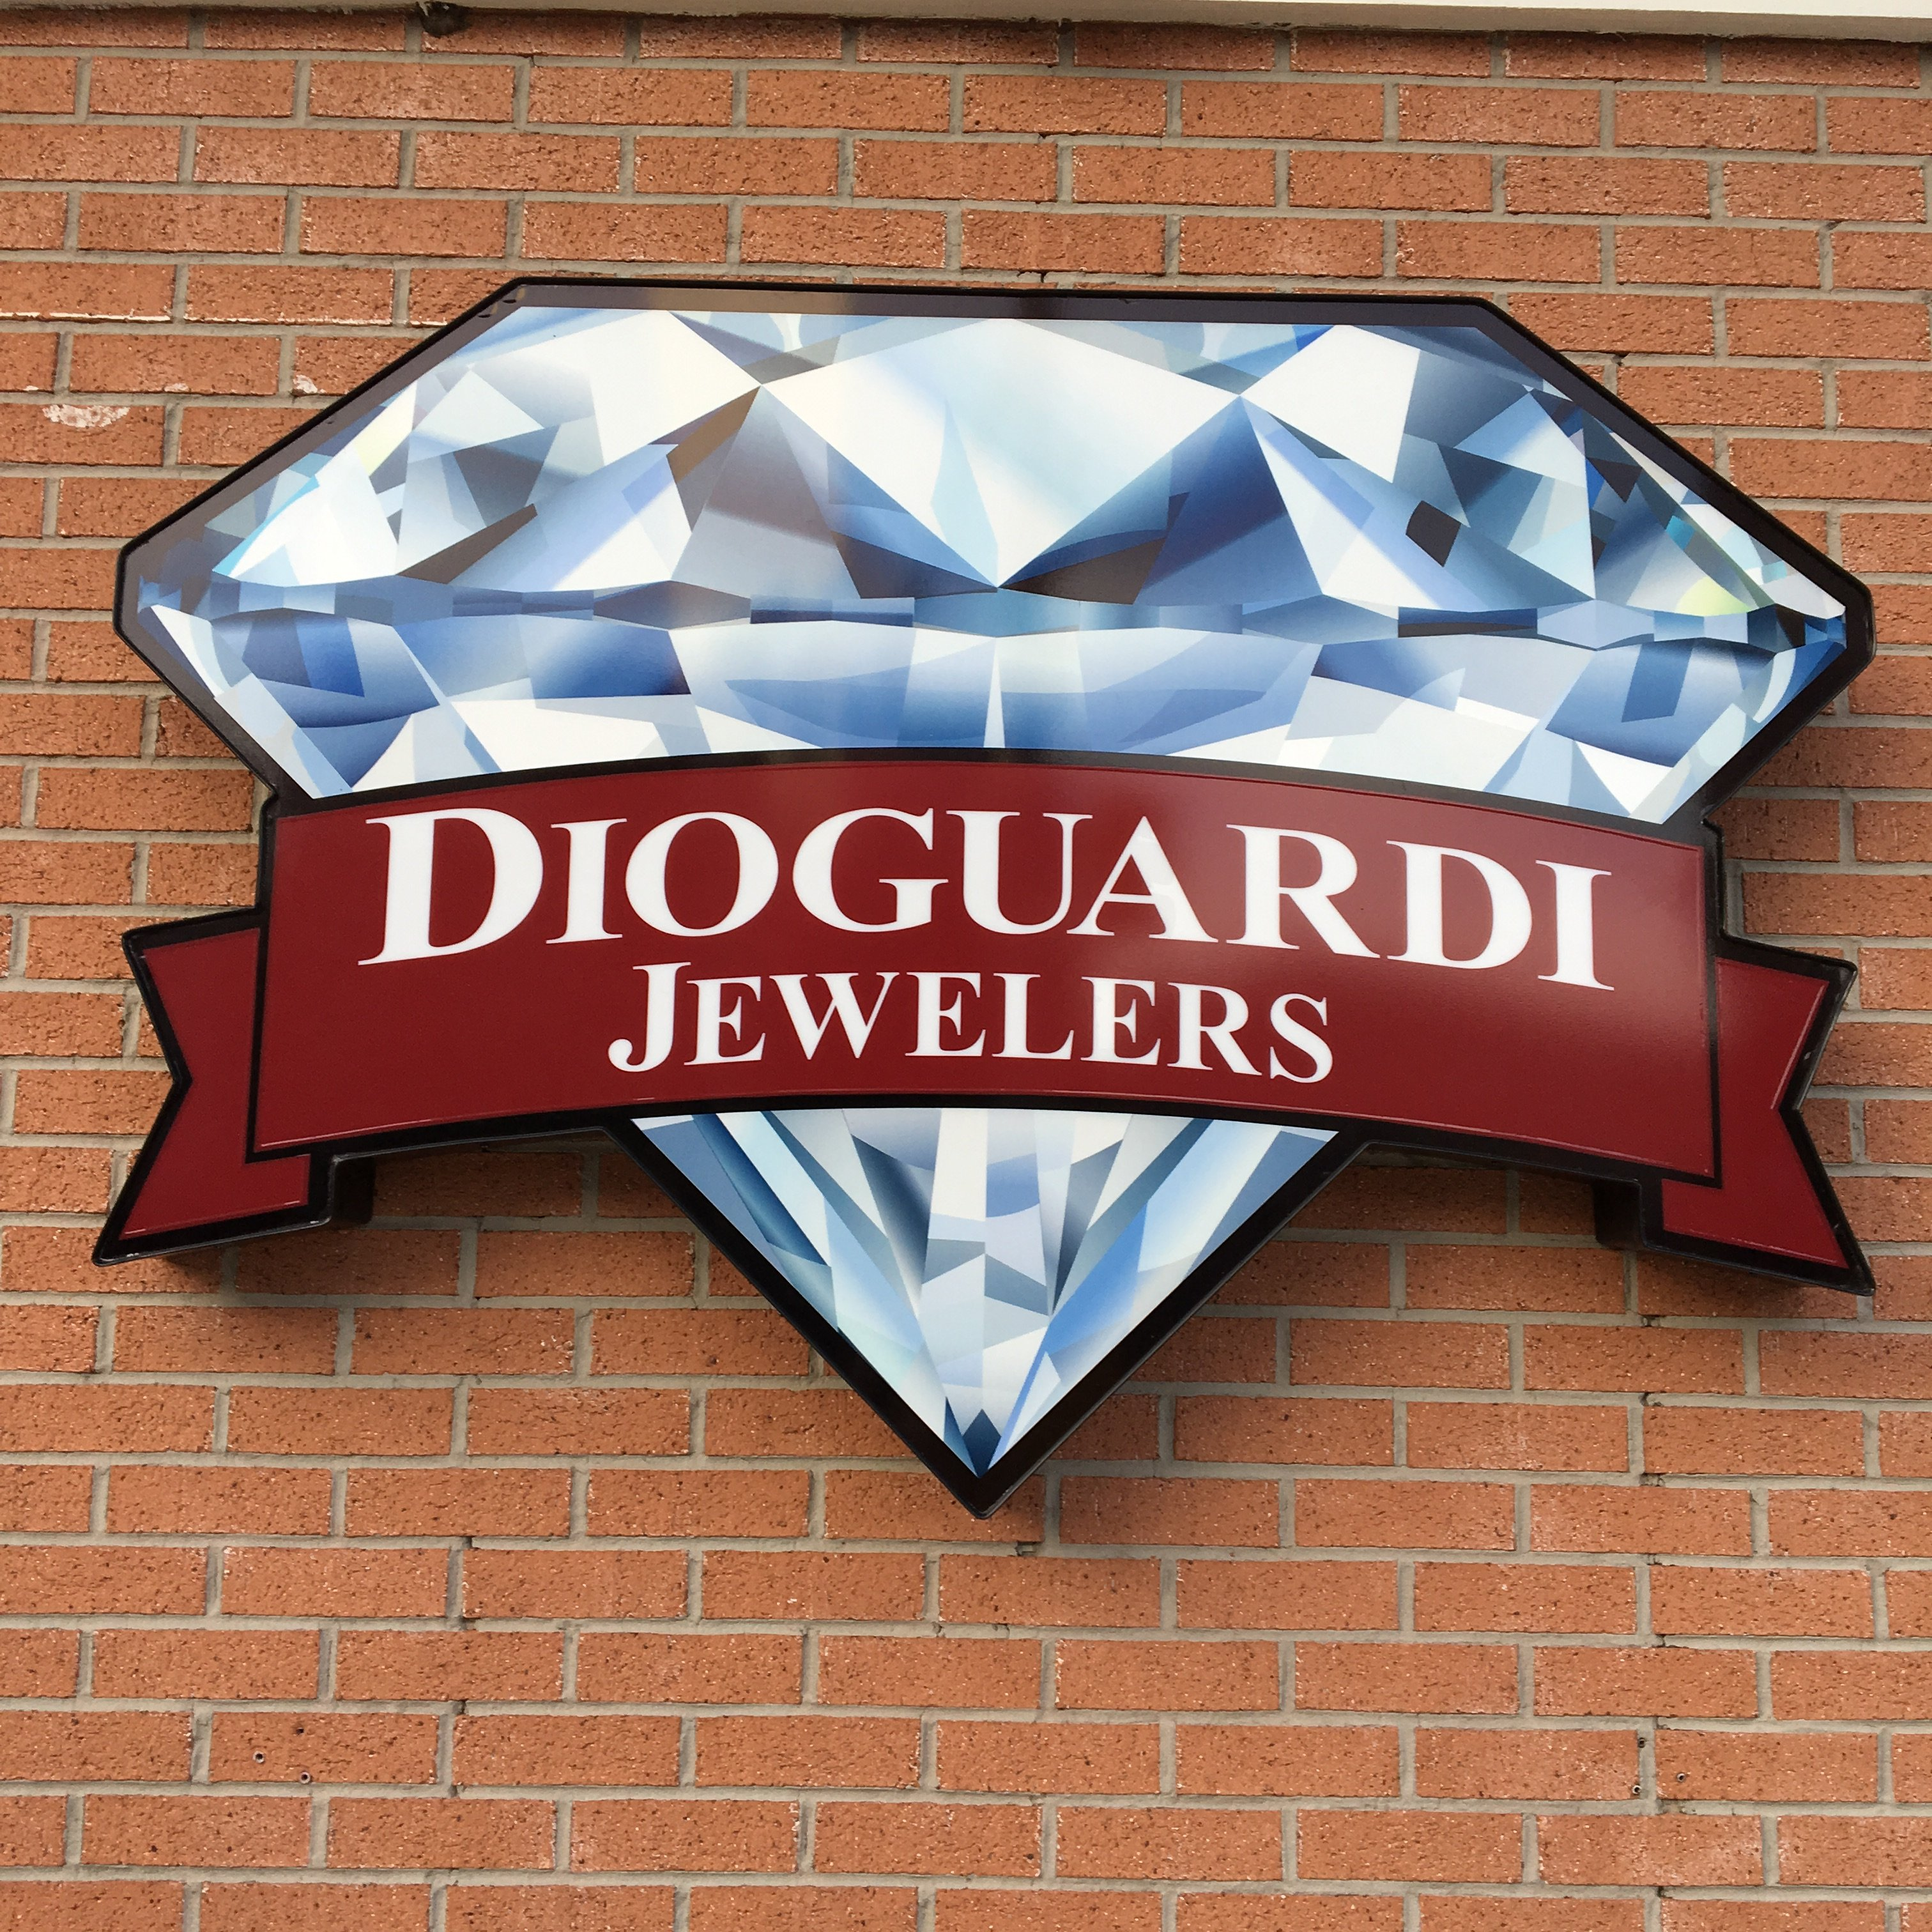 Dioguardi Jewelers Store Sign